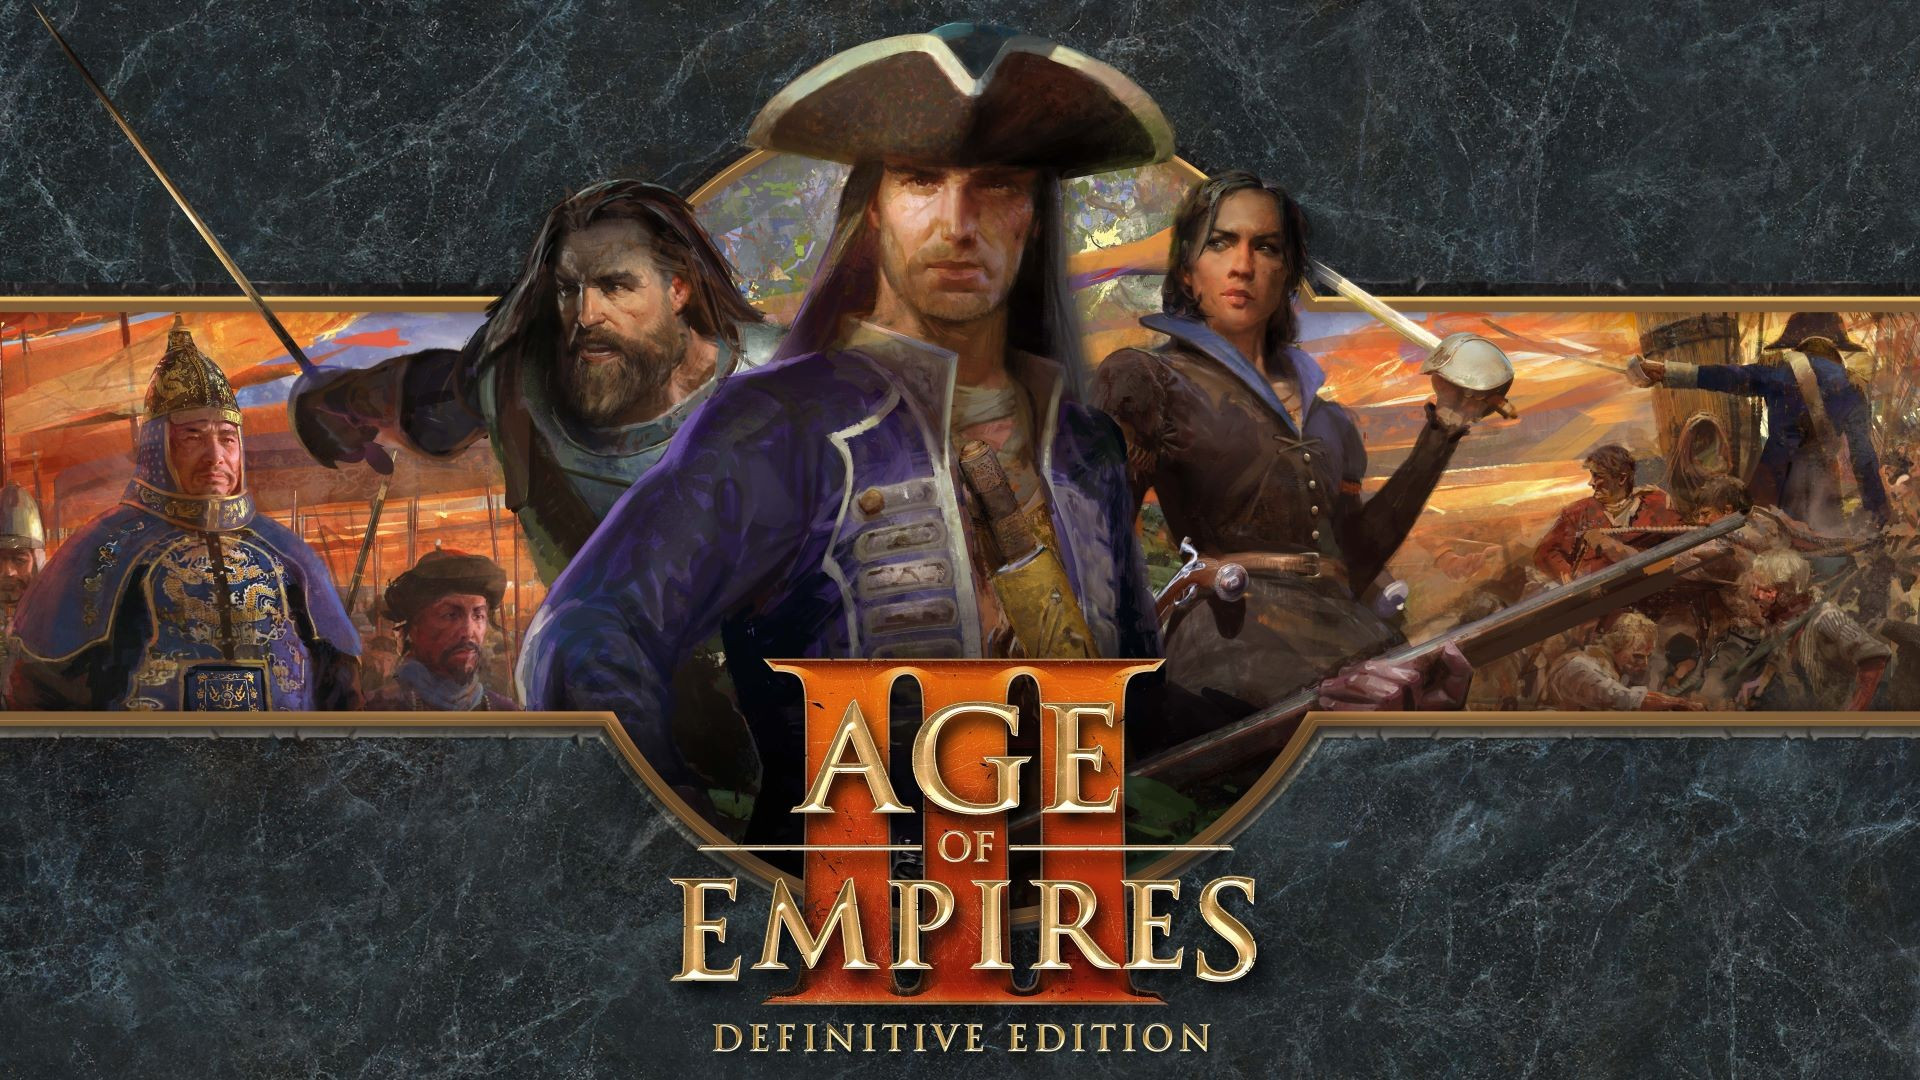 Ages of Empires 3, Definitive Edition